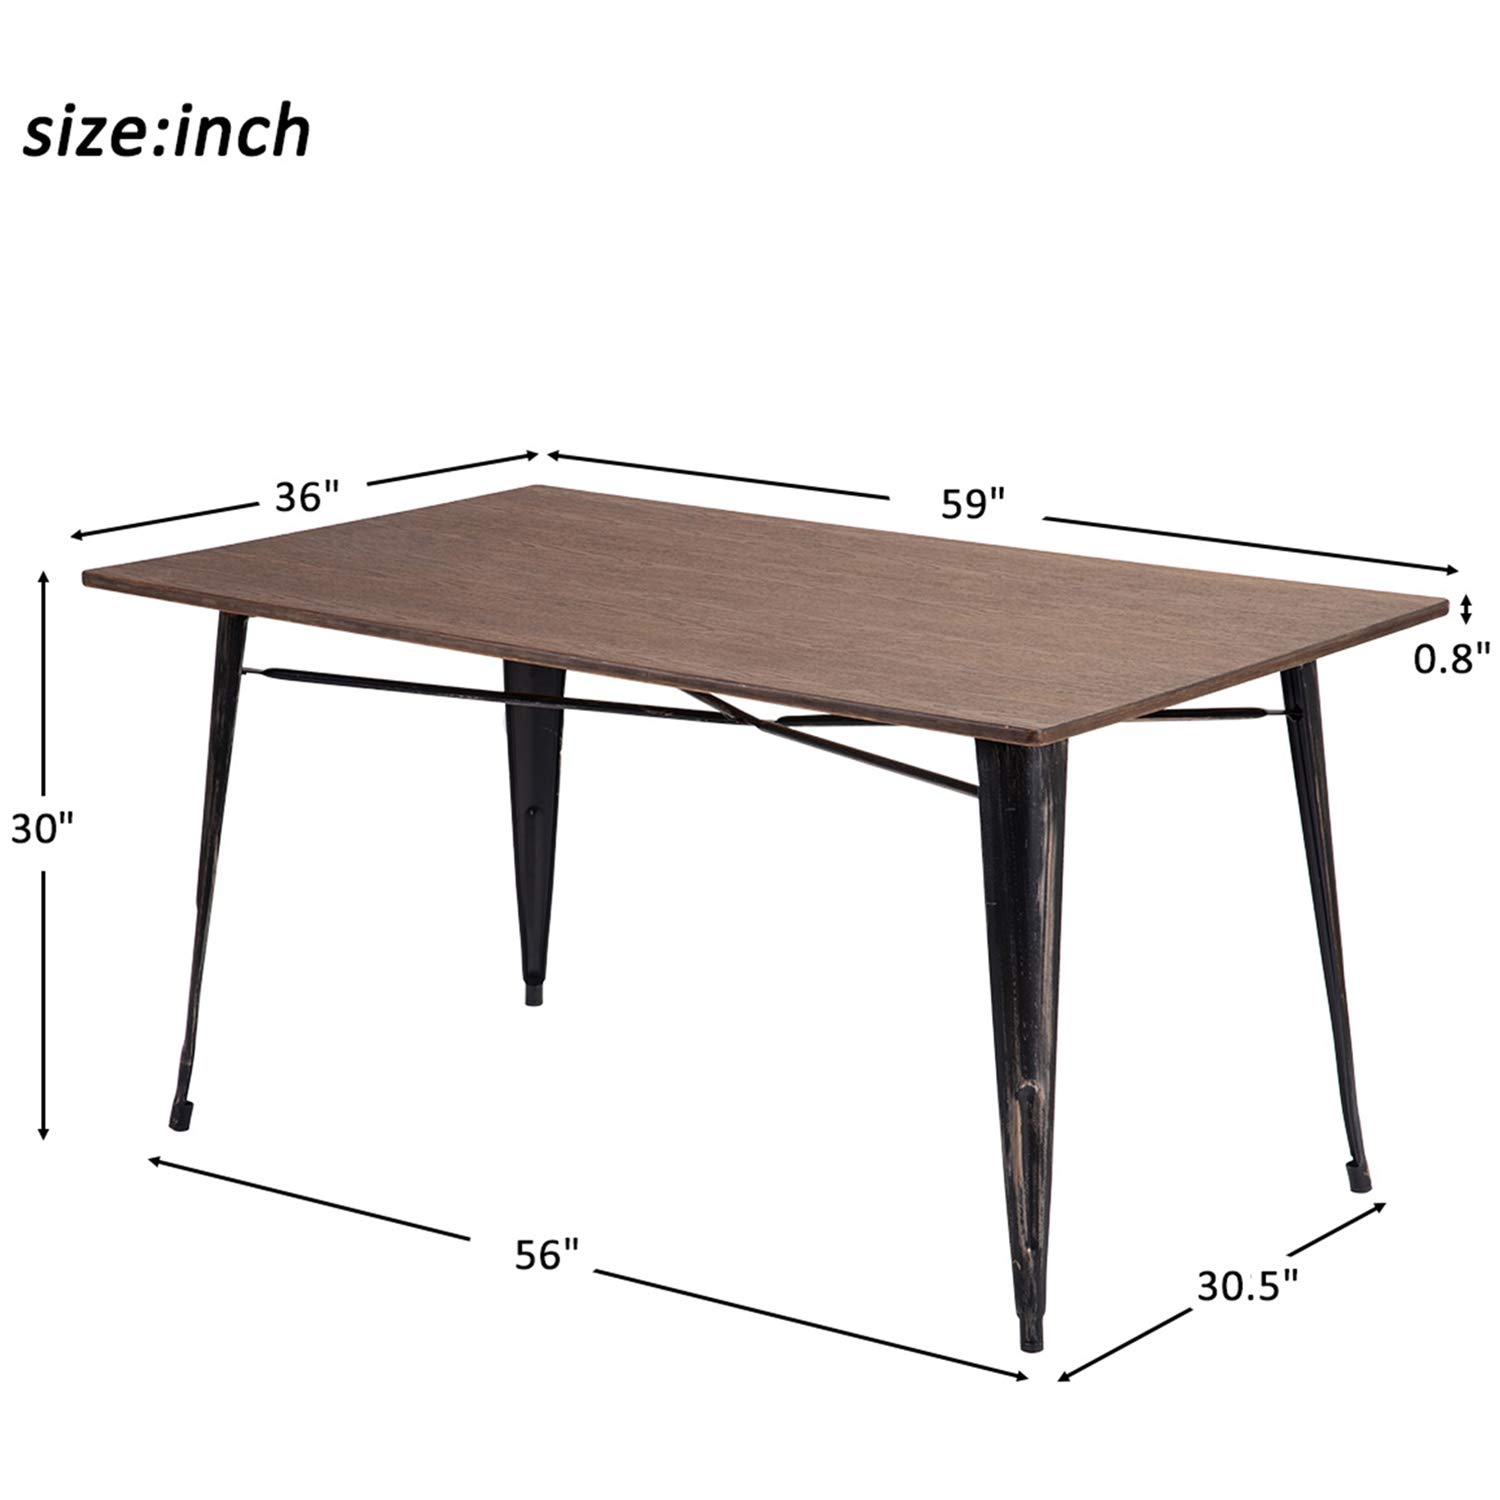 Merax Antique Style Rectangular Dining Table with Metal Legs 59 x 36 , Distressed Black, Only Table, Not Include Bench or Chairs